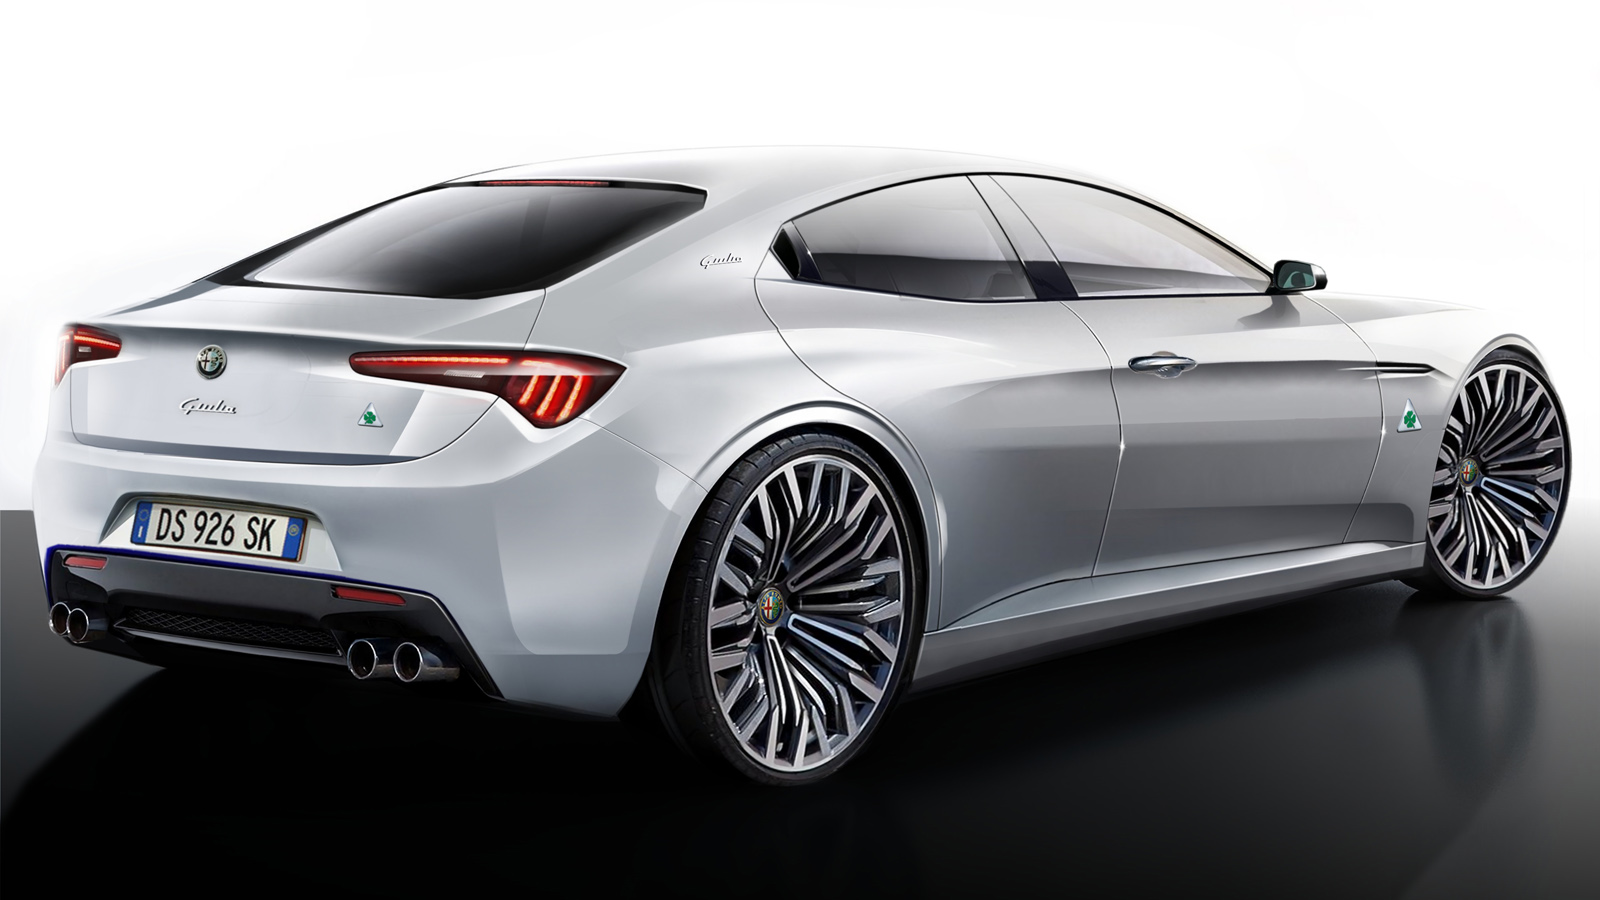 2015-Alfa-Romeo-Giulia-Launches-First-Among-9-New-Alfas-4